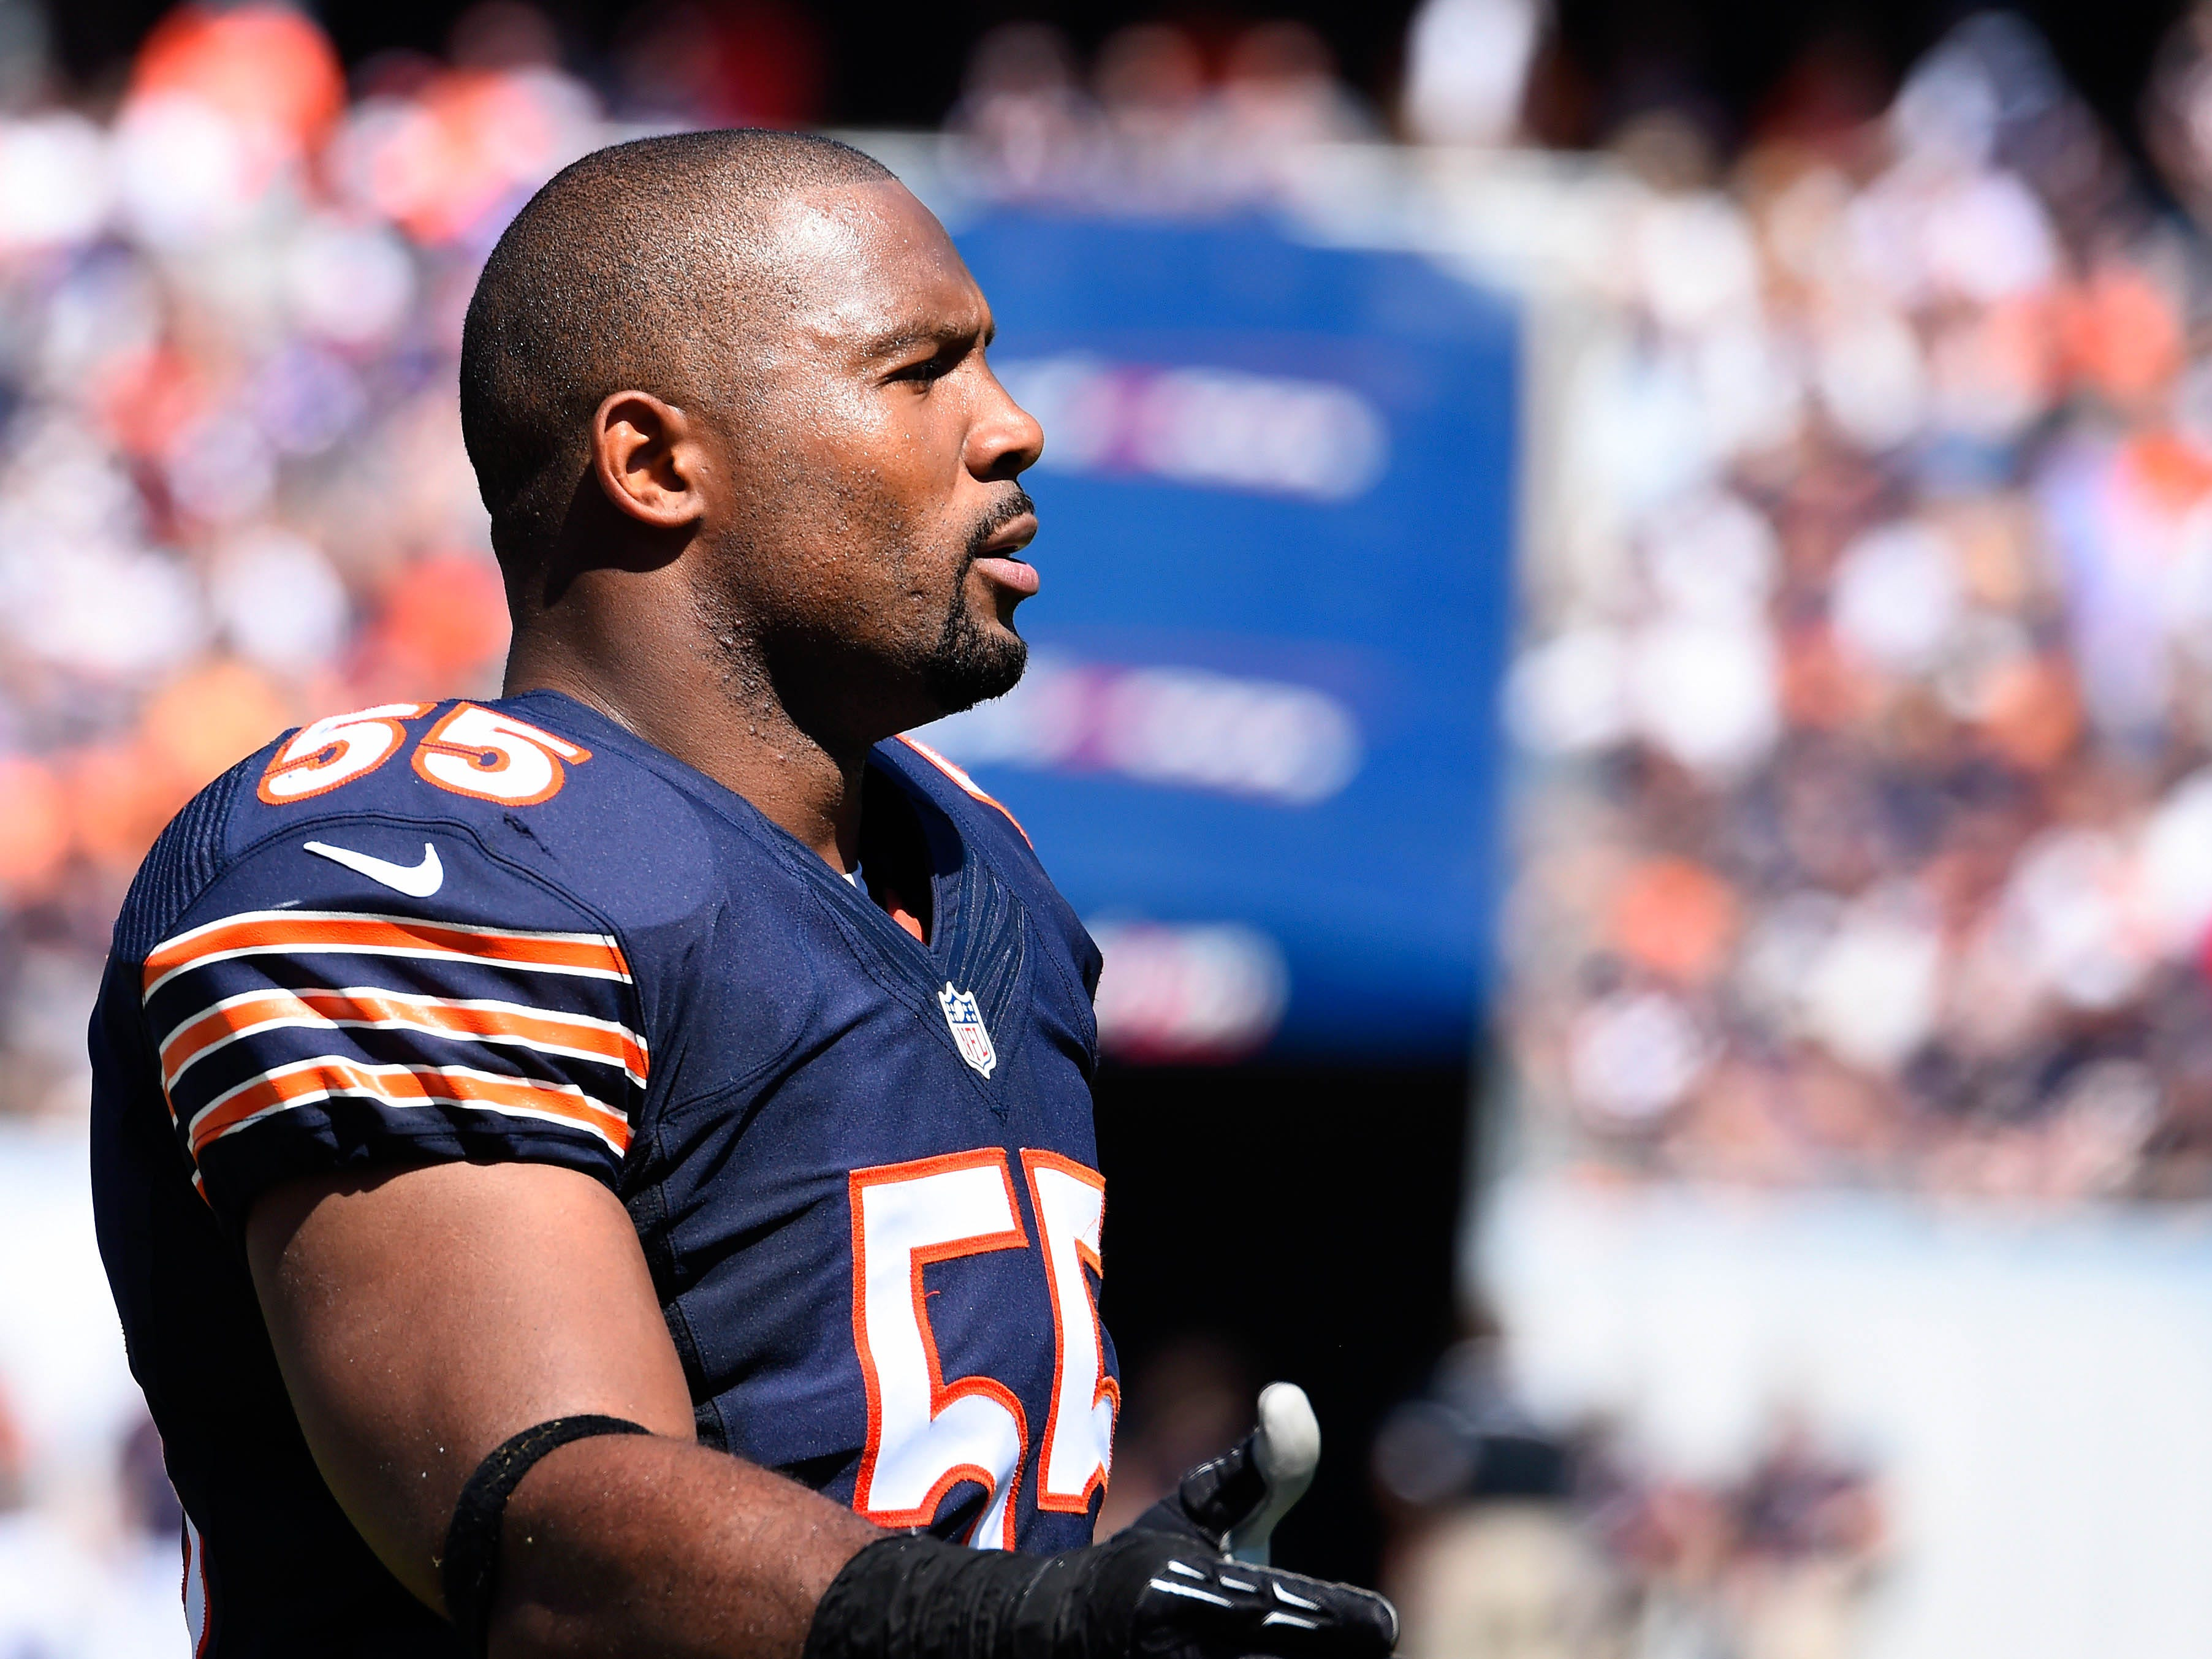 Lance Briggs played college football at Arizona before going on to a 12-year NFL career with the Chicago Bears.